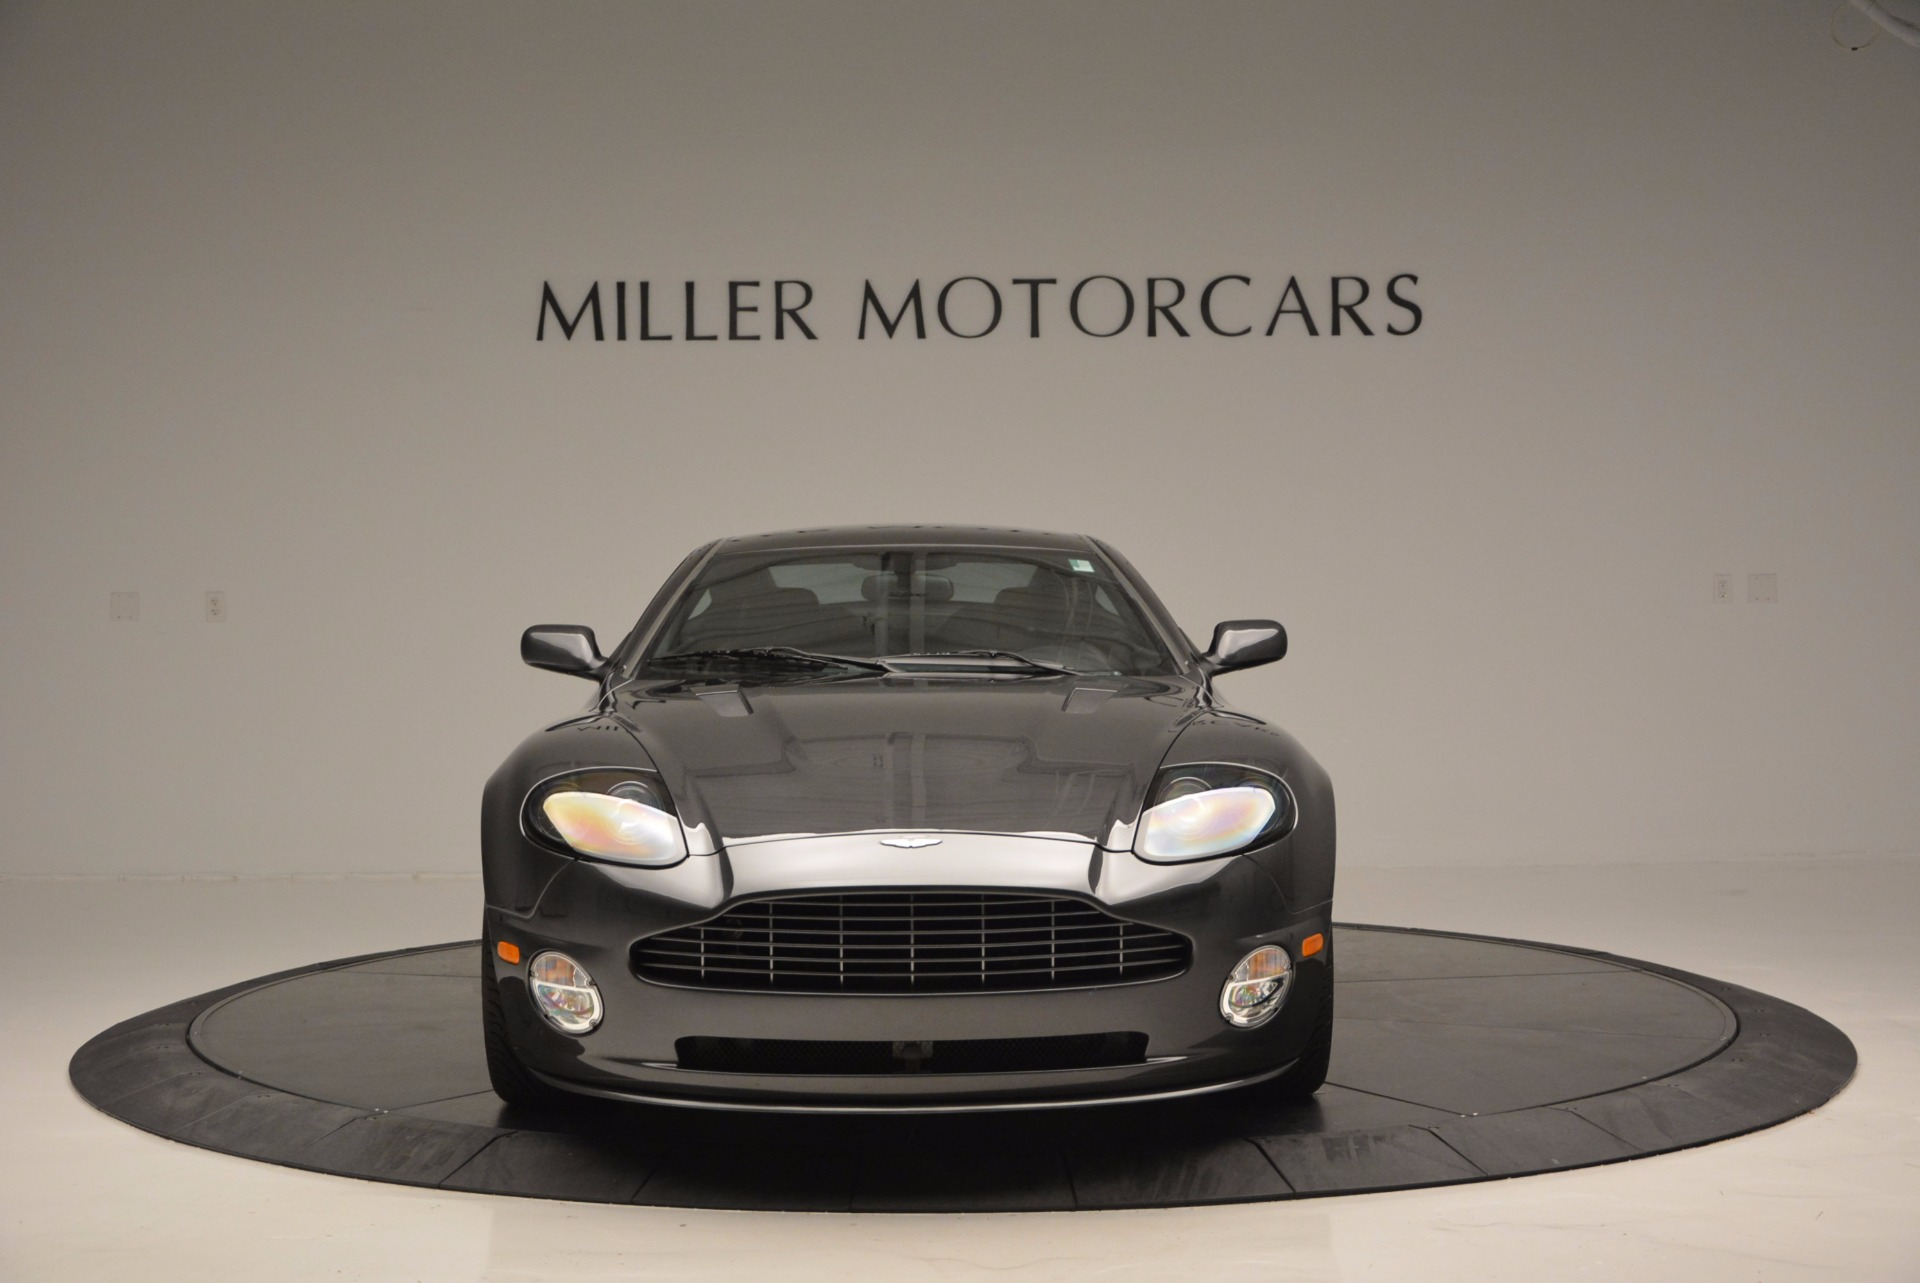 Used 2005 Aston Martin V12 Vanquish S For Sale In Greenwich, CT. Alfa Romeo of Greenwich, 7097 645_p12